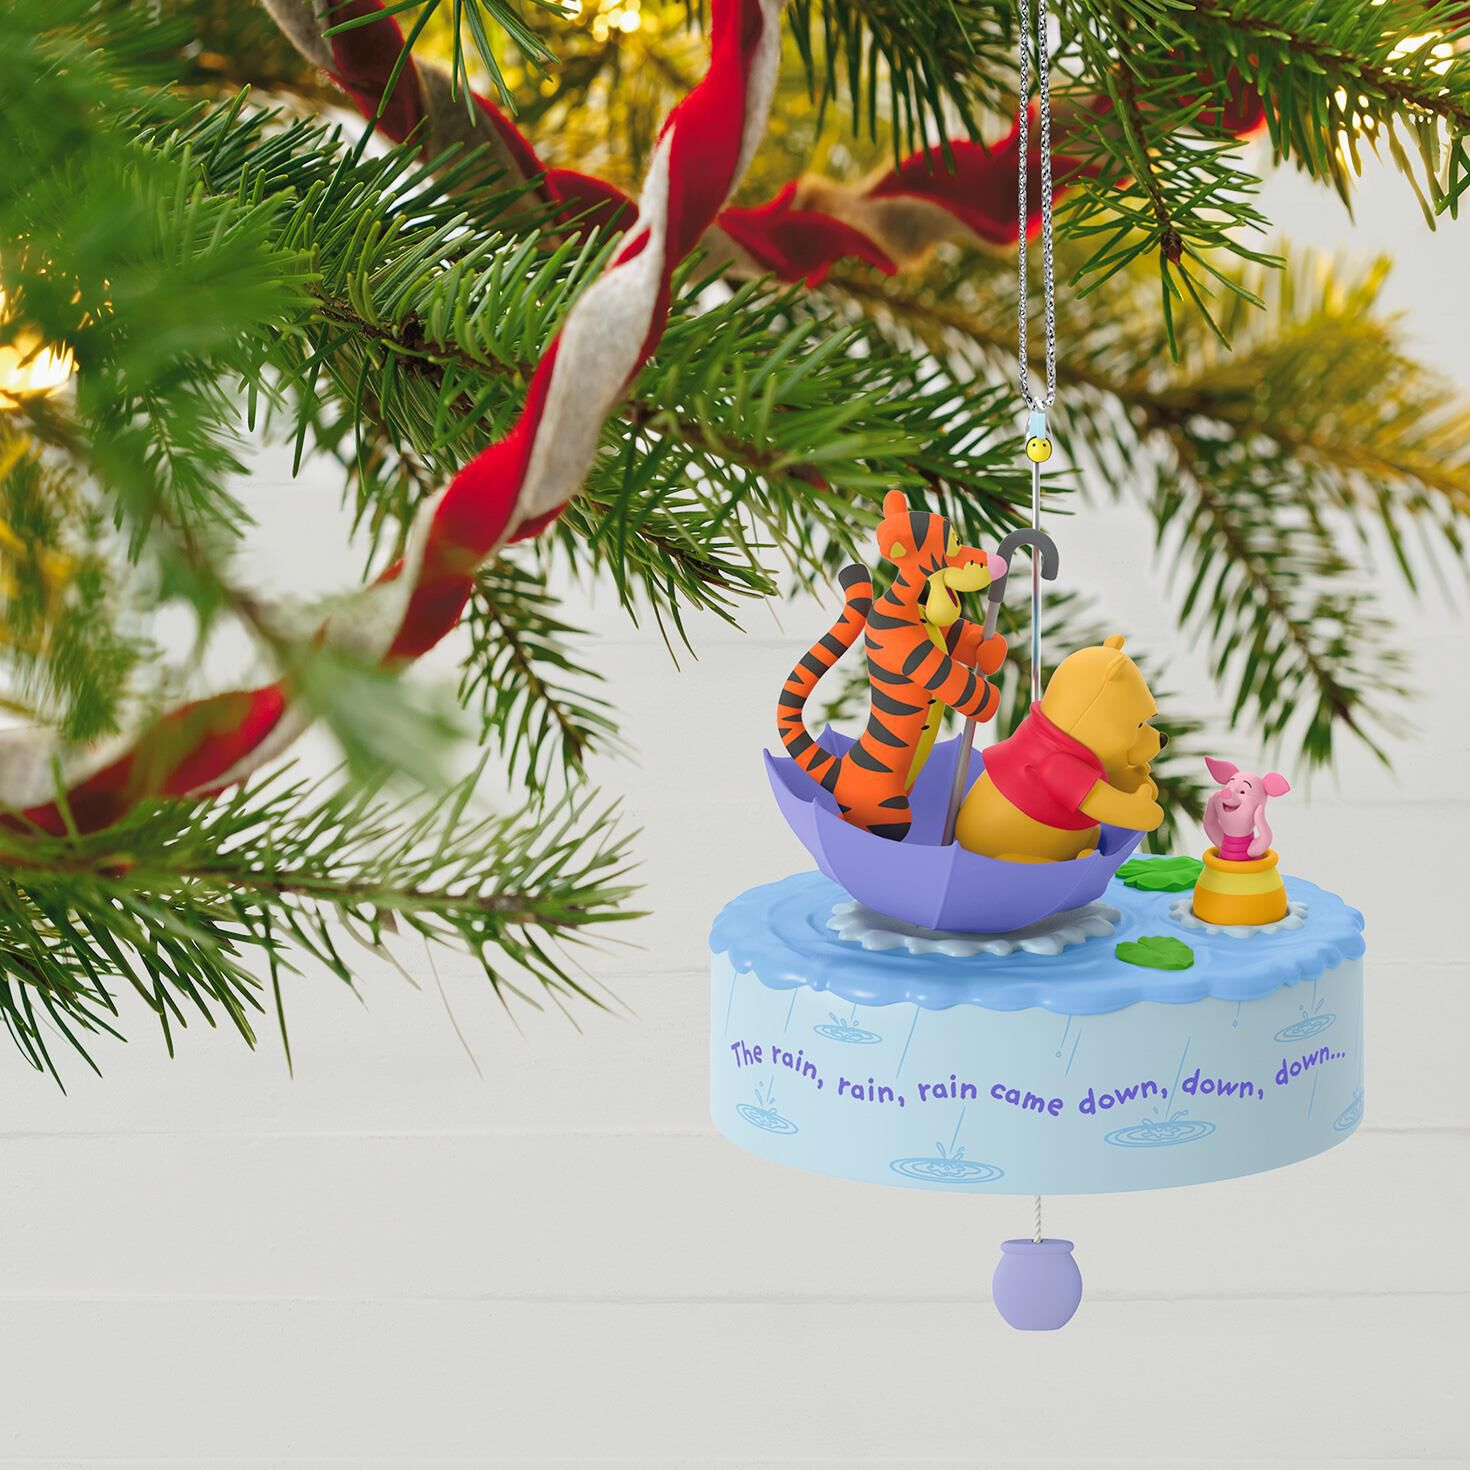 Winnie the Pooh A Blustery Day Musical Ornament With Motion ...